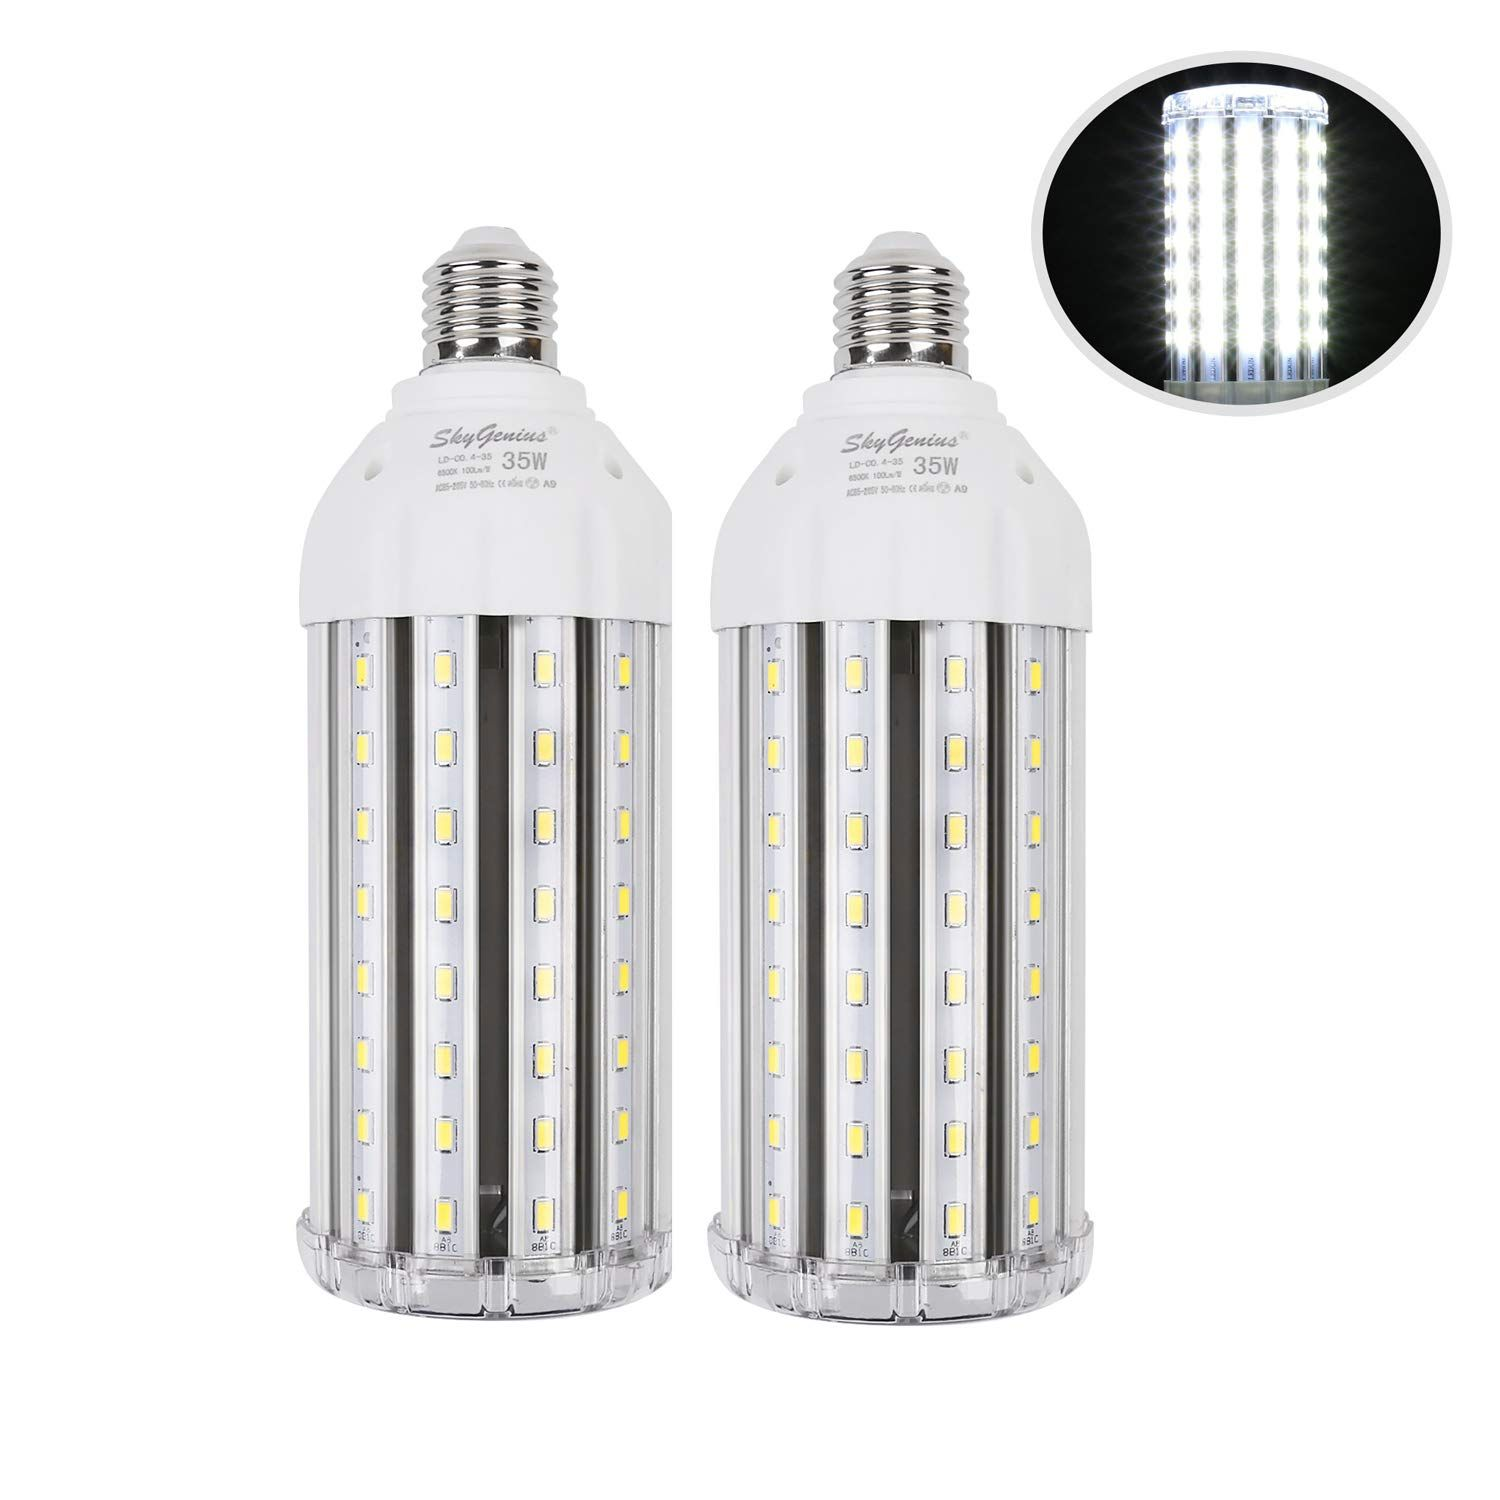 35w Super Bright Led Corn Light Bulb For Garage E26 High Output 3500lm 6500k Daylight Led Corn Bulb 300 Watt Equivalent For Bulb Globe Light Bulbs Light Bulb